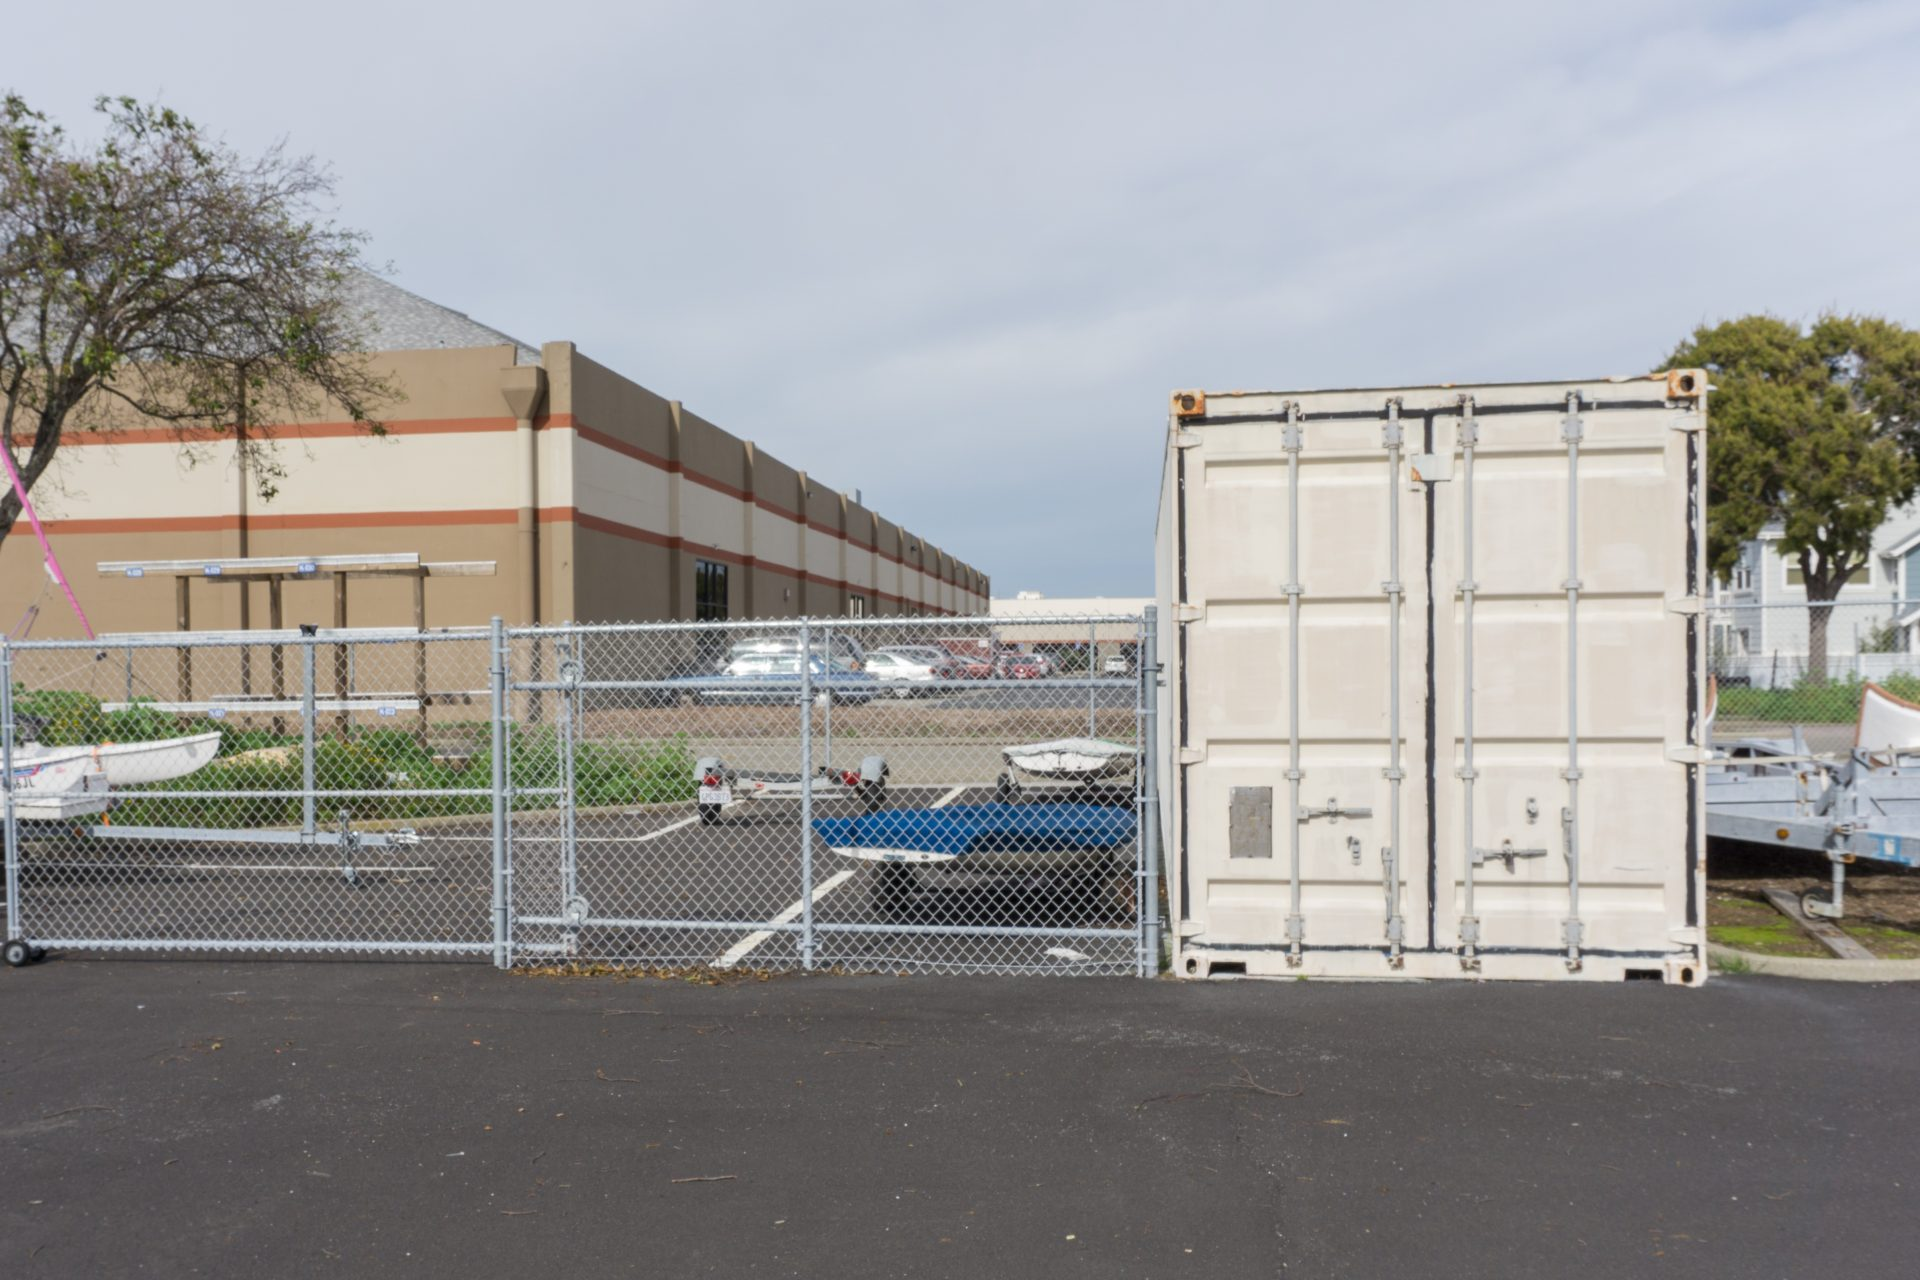 chainlink fence with boats and kayak racks inside, next to a locked shipping container